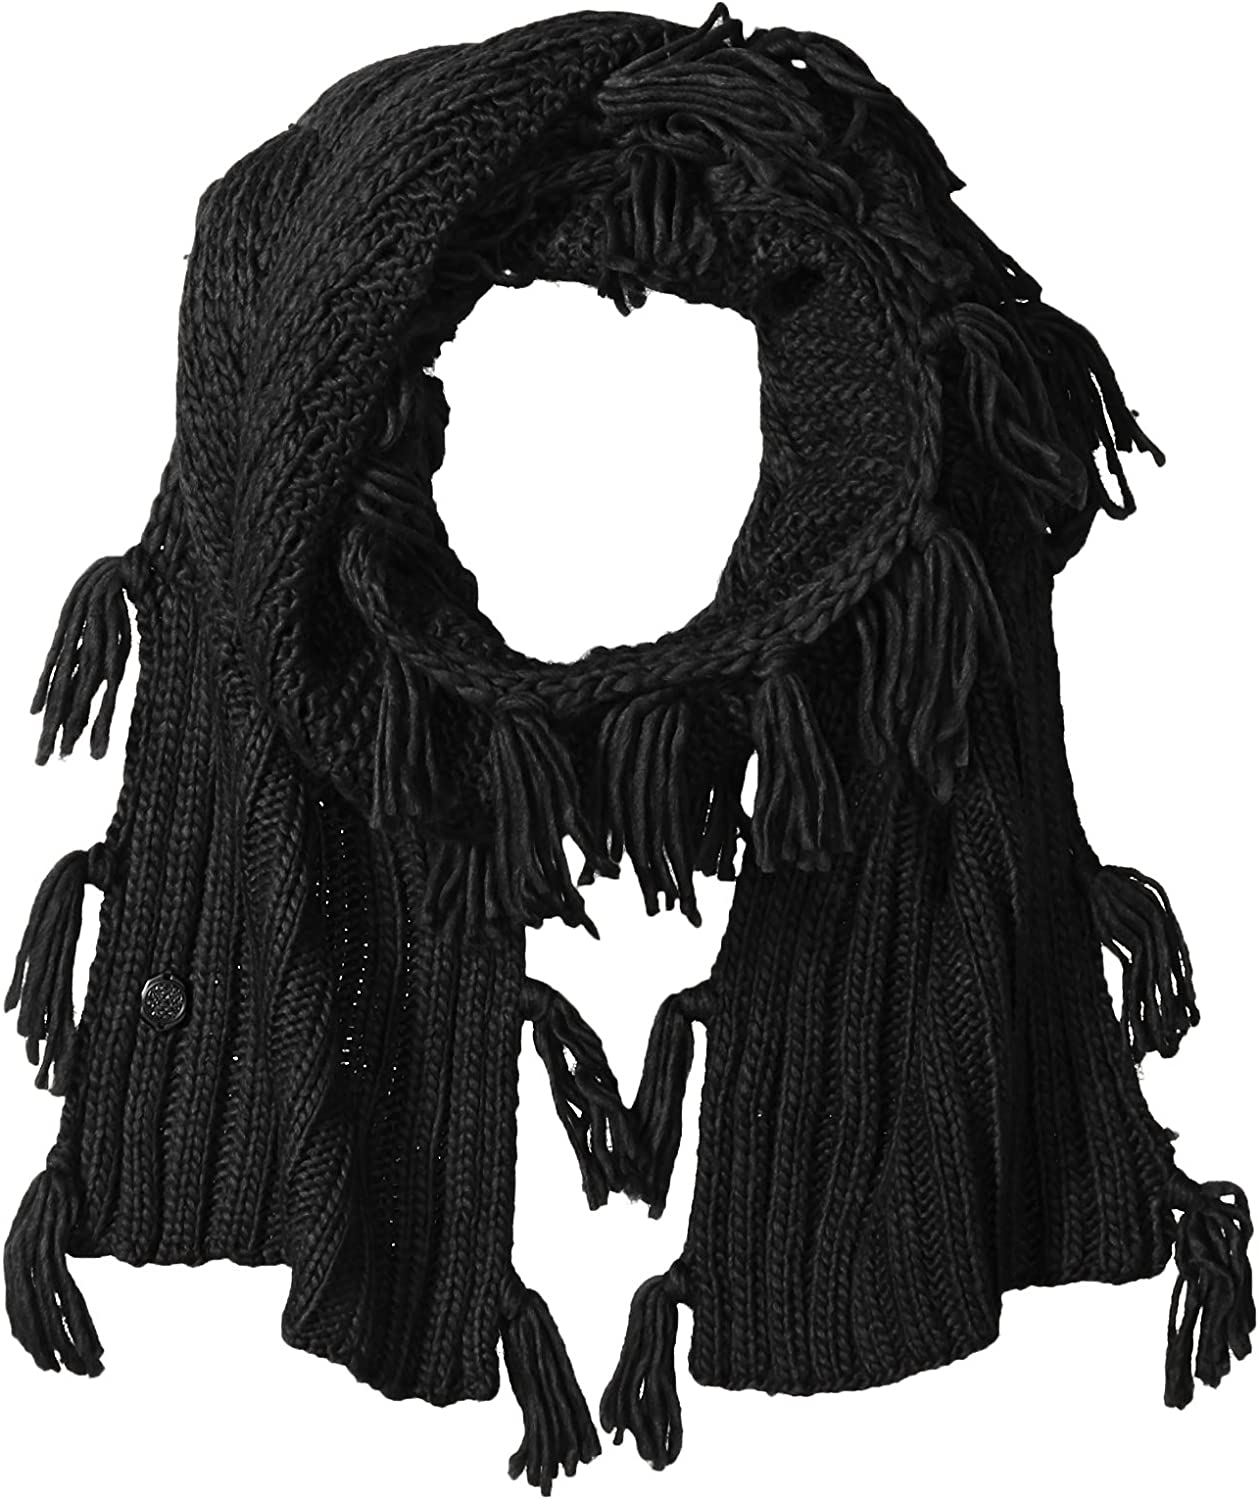 Vince Camuto Women's Geometric Stitch Scarf with Side Tassels and Studs